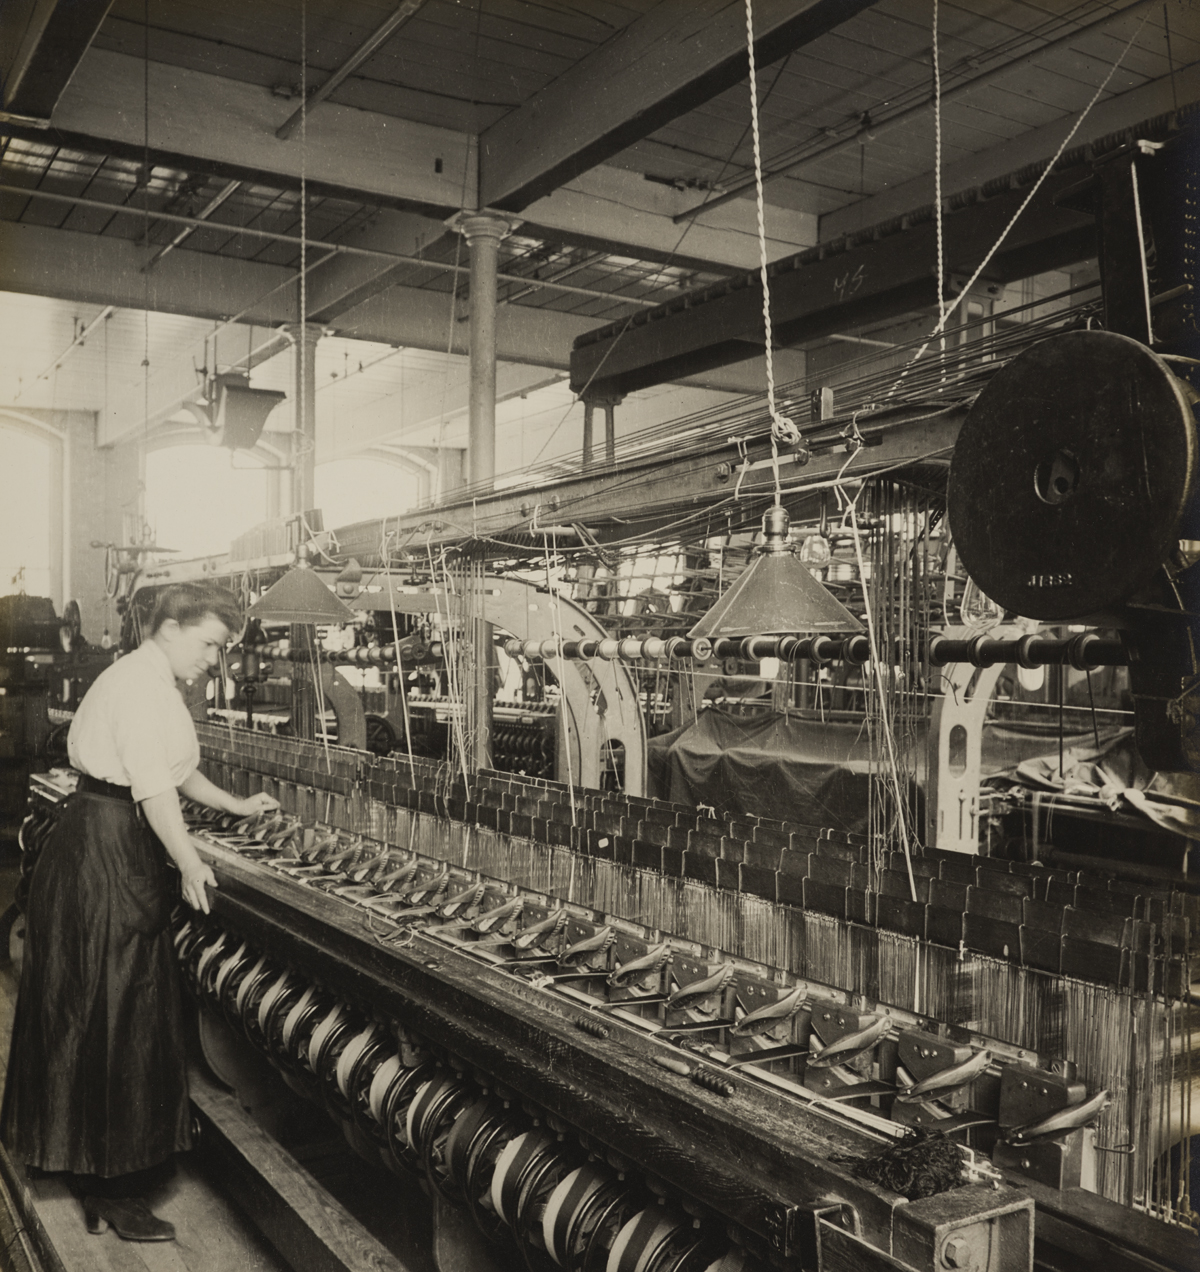 A worker at the loom in Cheney Brother silk factory.